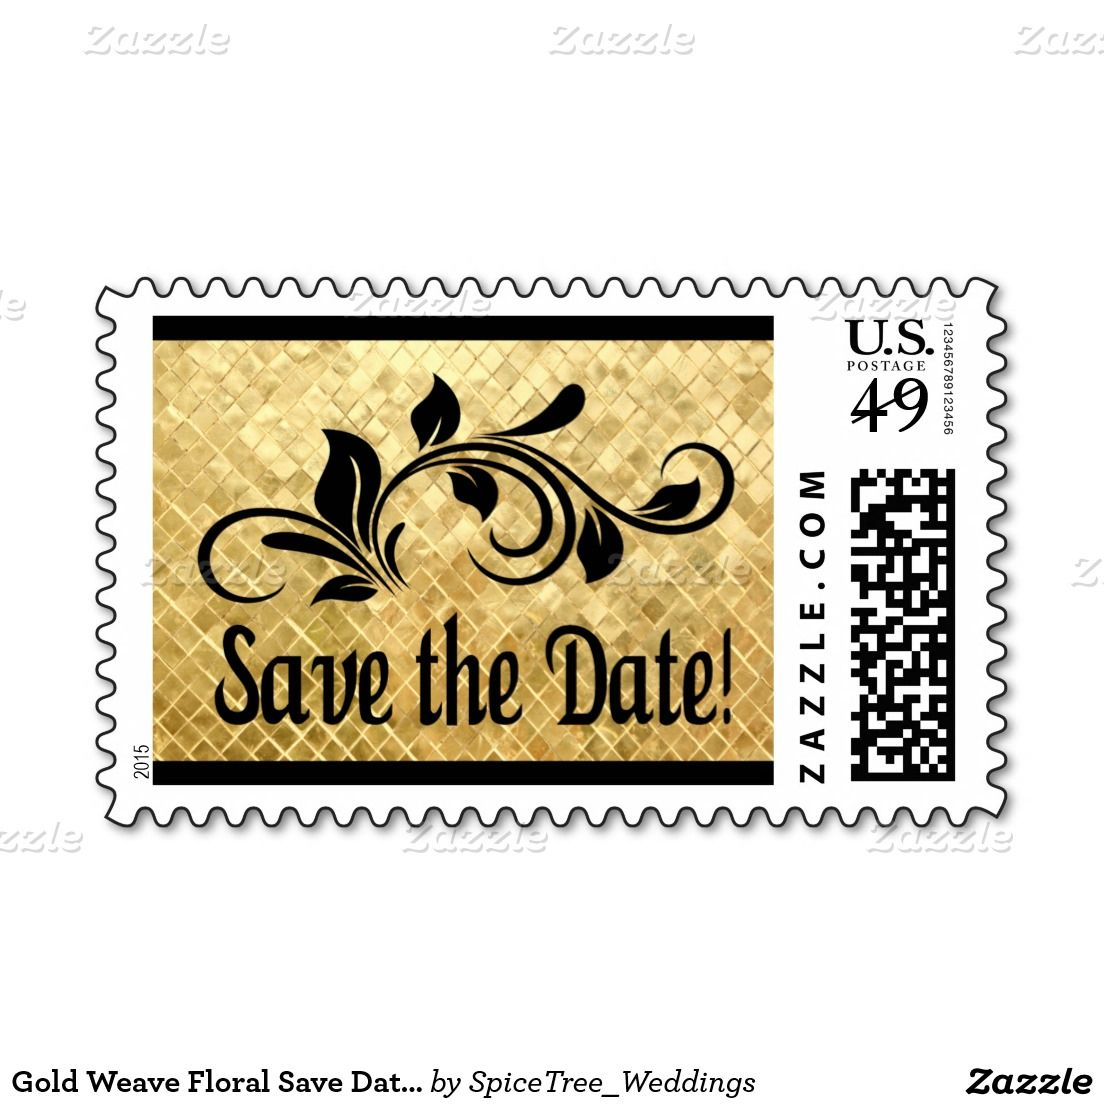 Gold Weave Floral Save Date Postage Floral Gold And Weddings